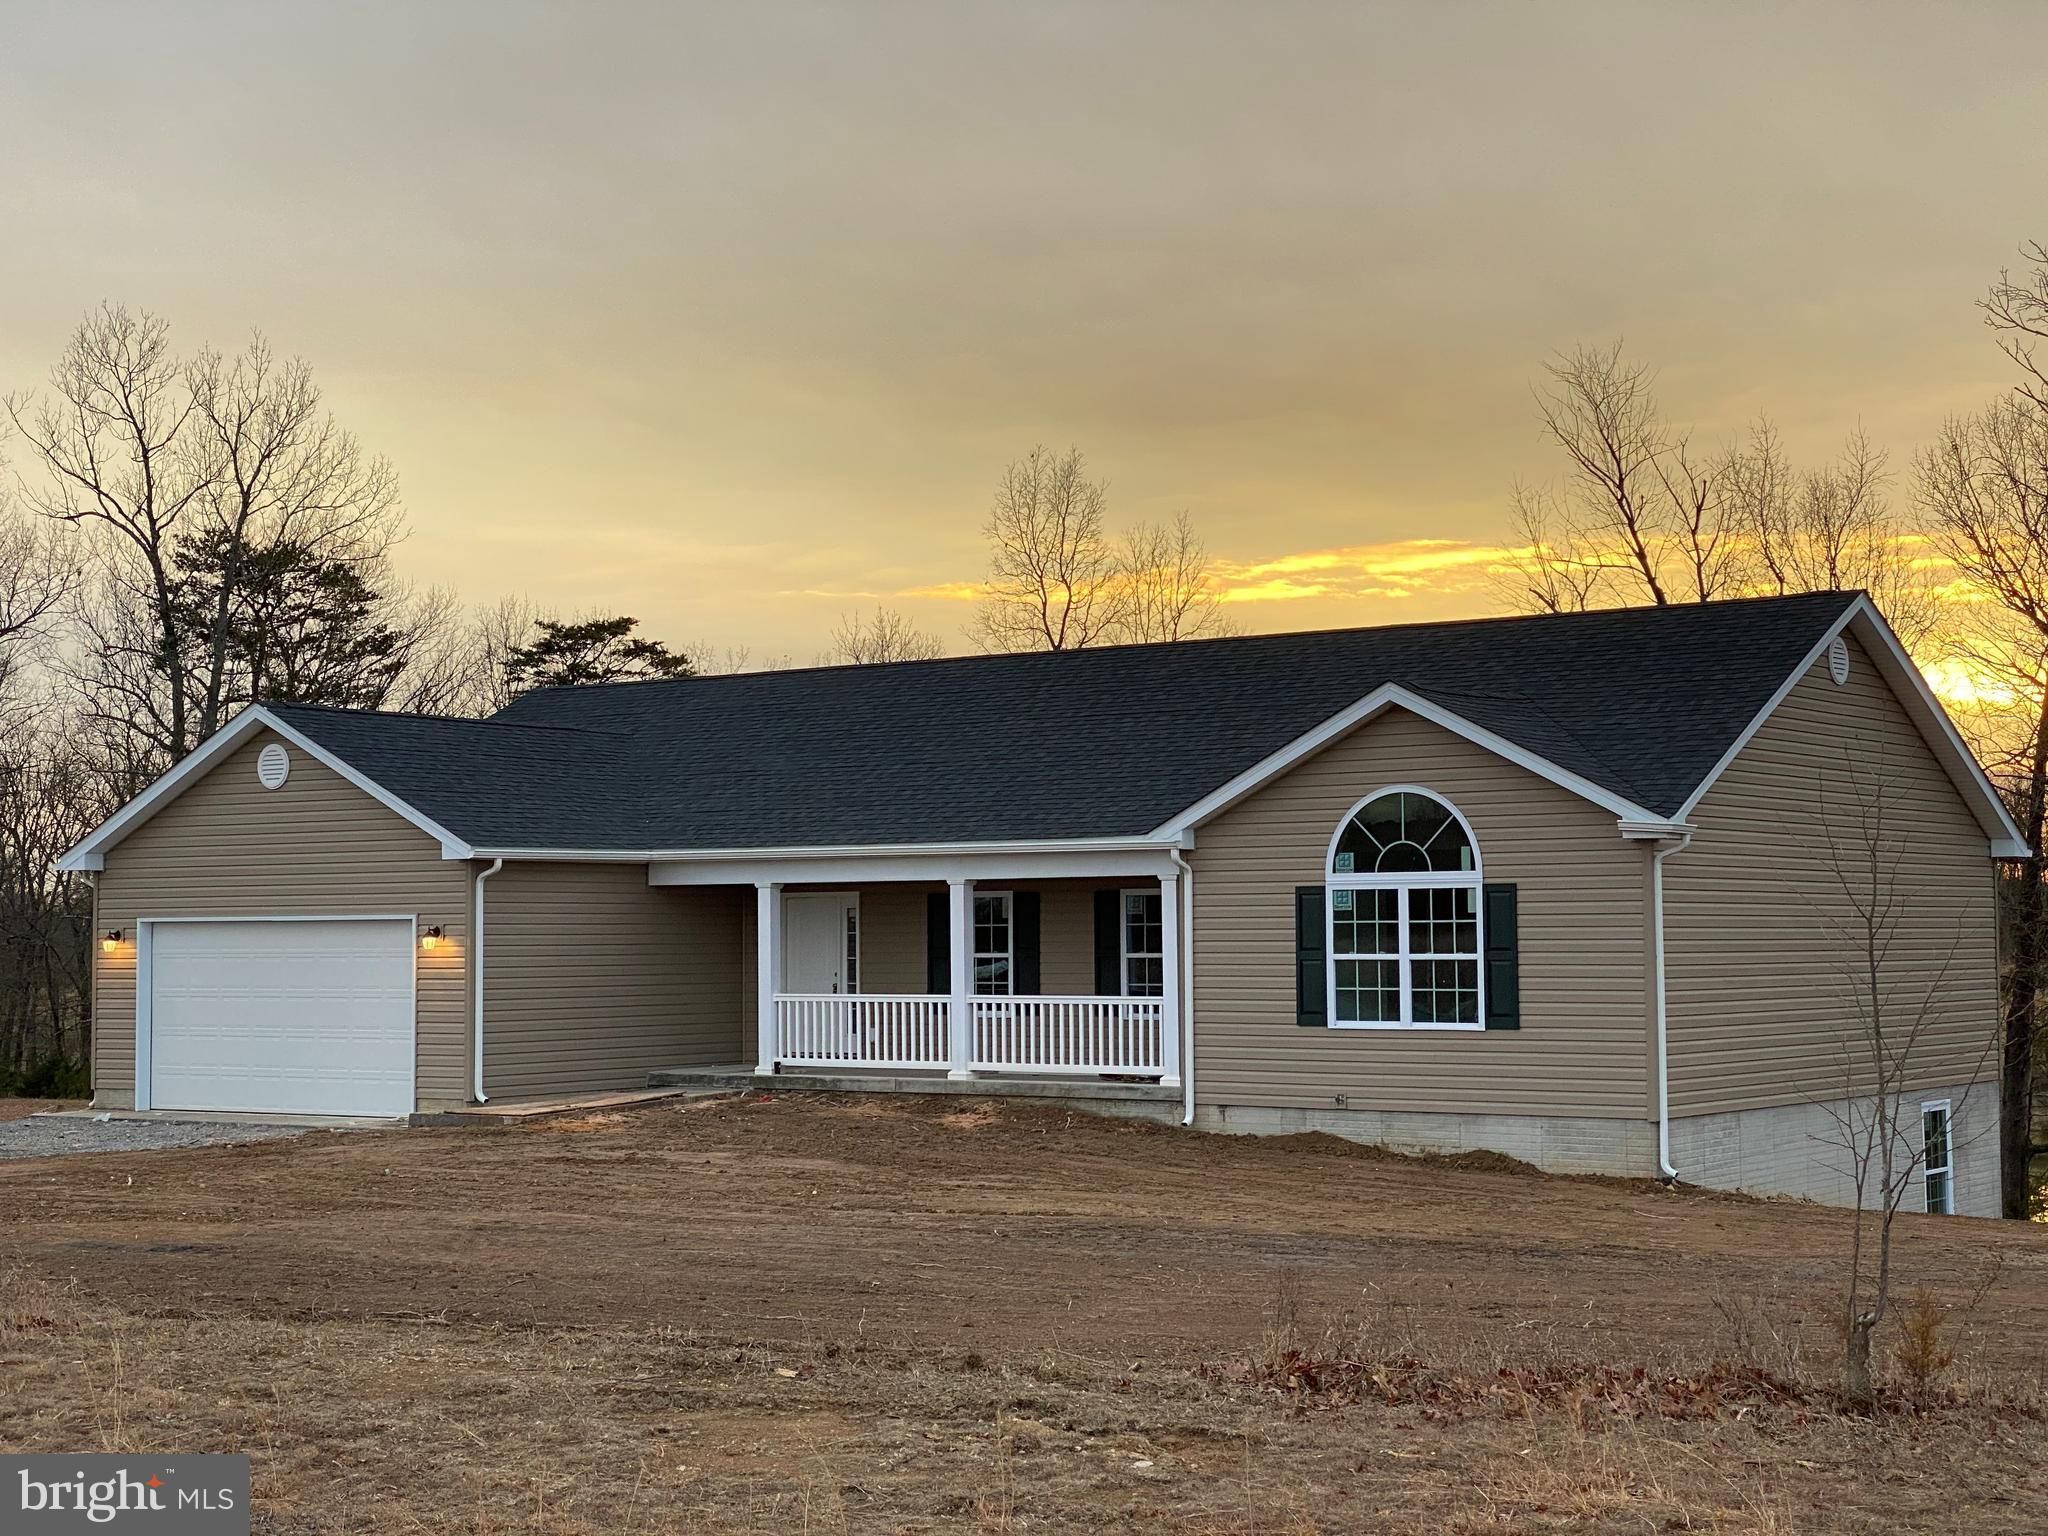 Under construction -New Ranch Home - 5 acres unrestricted. Offers 3 bedrooms, 2 full baths- 5 Acres.